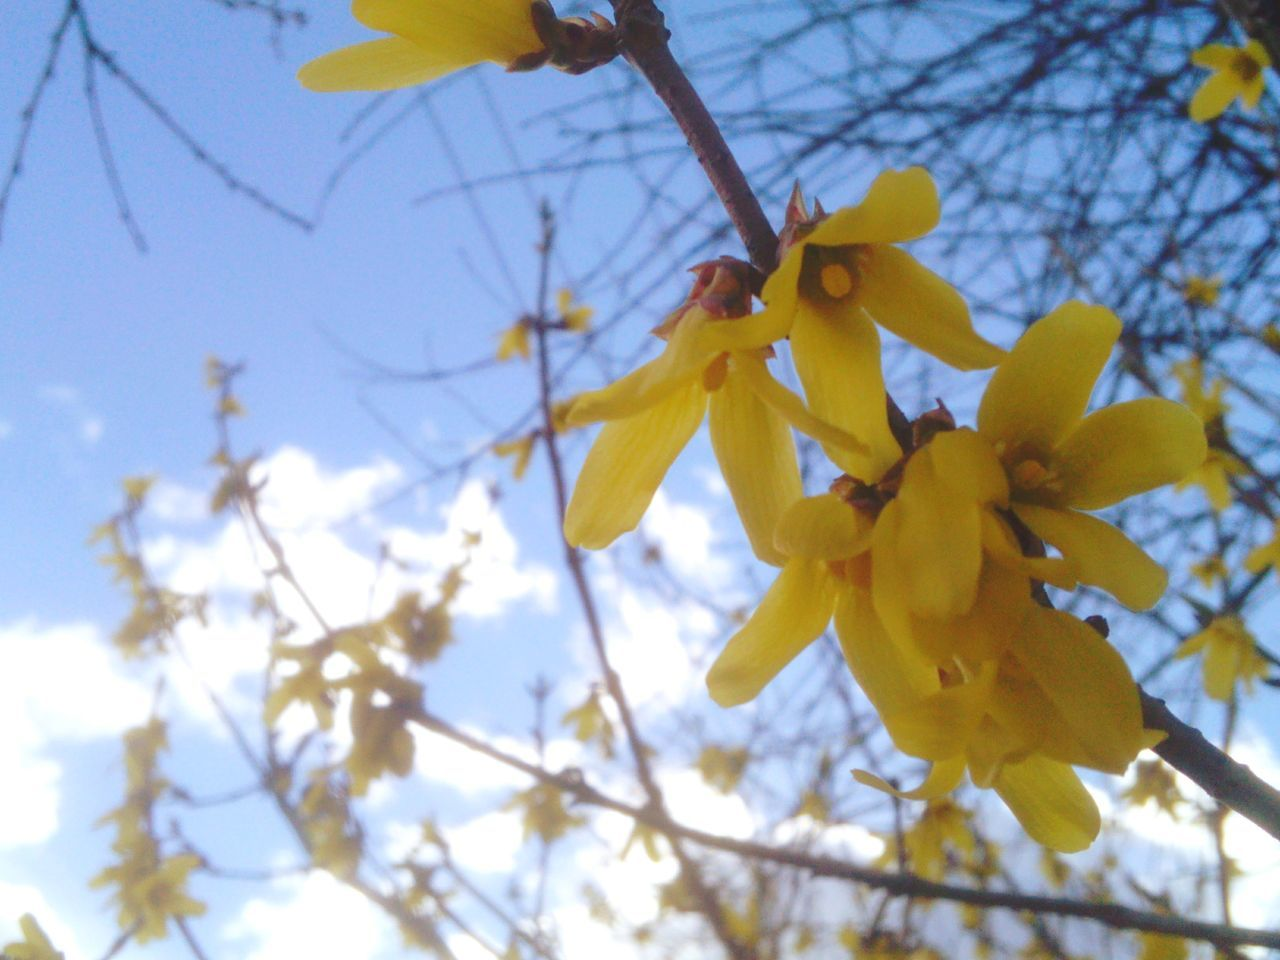 flower, low angle view, branch, beauty in nature, growth, fragility, nature, blossom, tree, springtime, yellow, day, no people, petal, outdoors, clear sky, freshness, sky, close-up, blooming, flower head